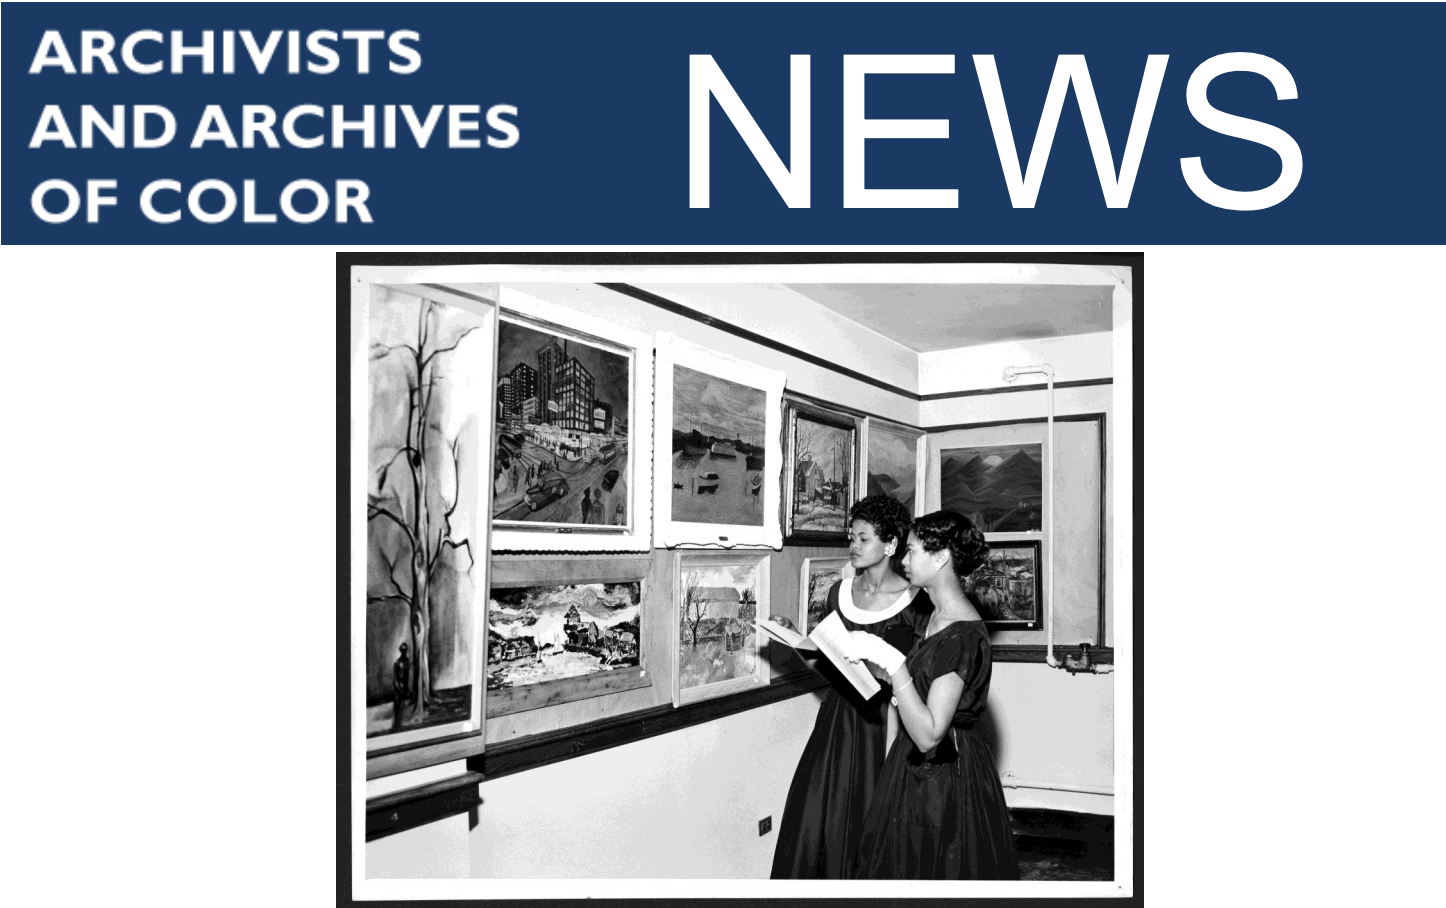 Archivists and Archives of Color News cover